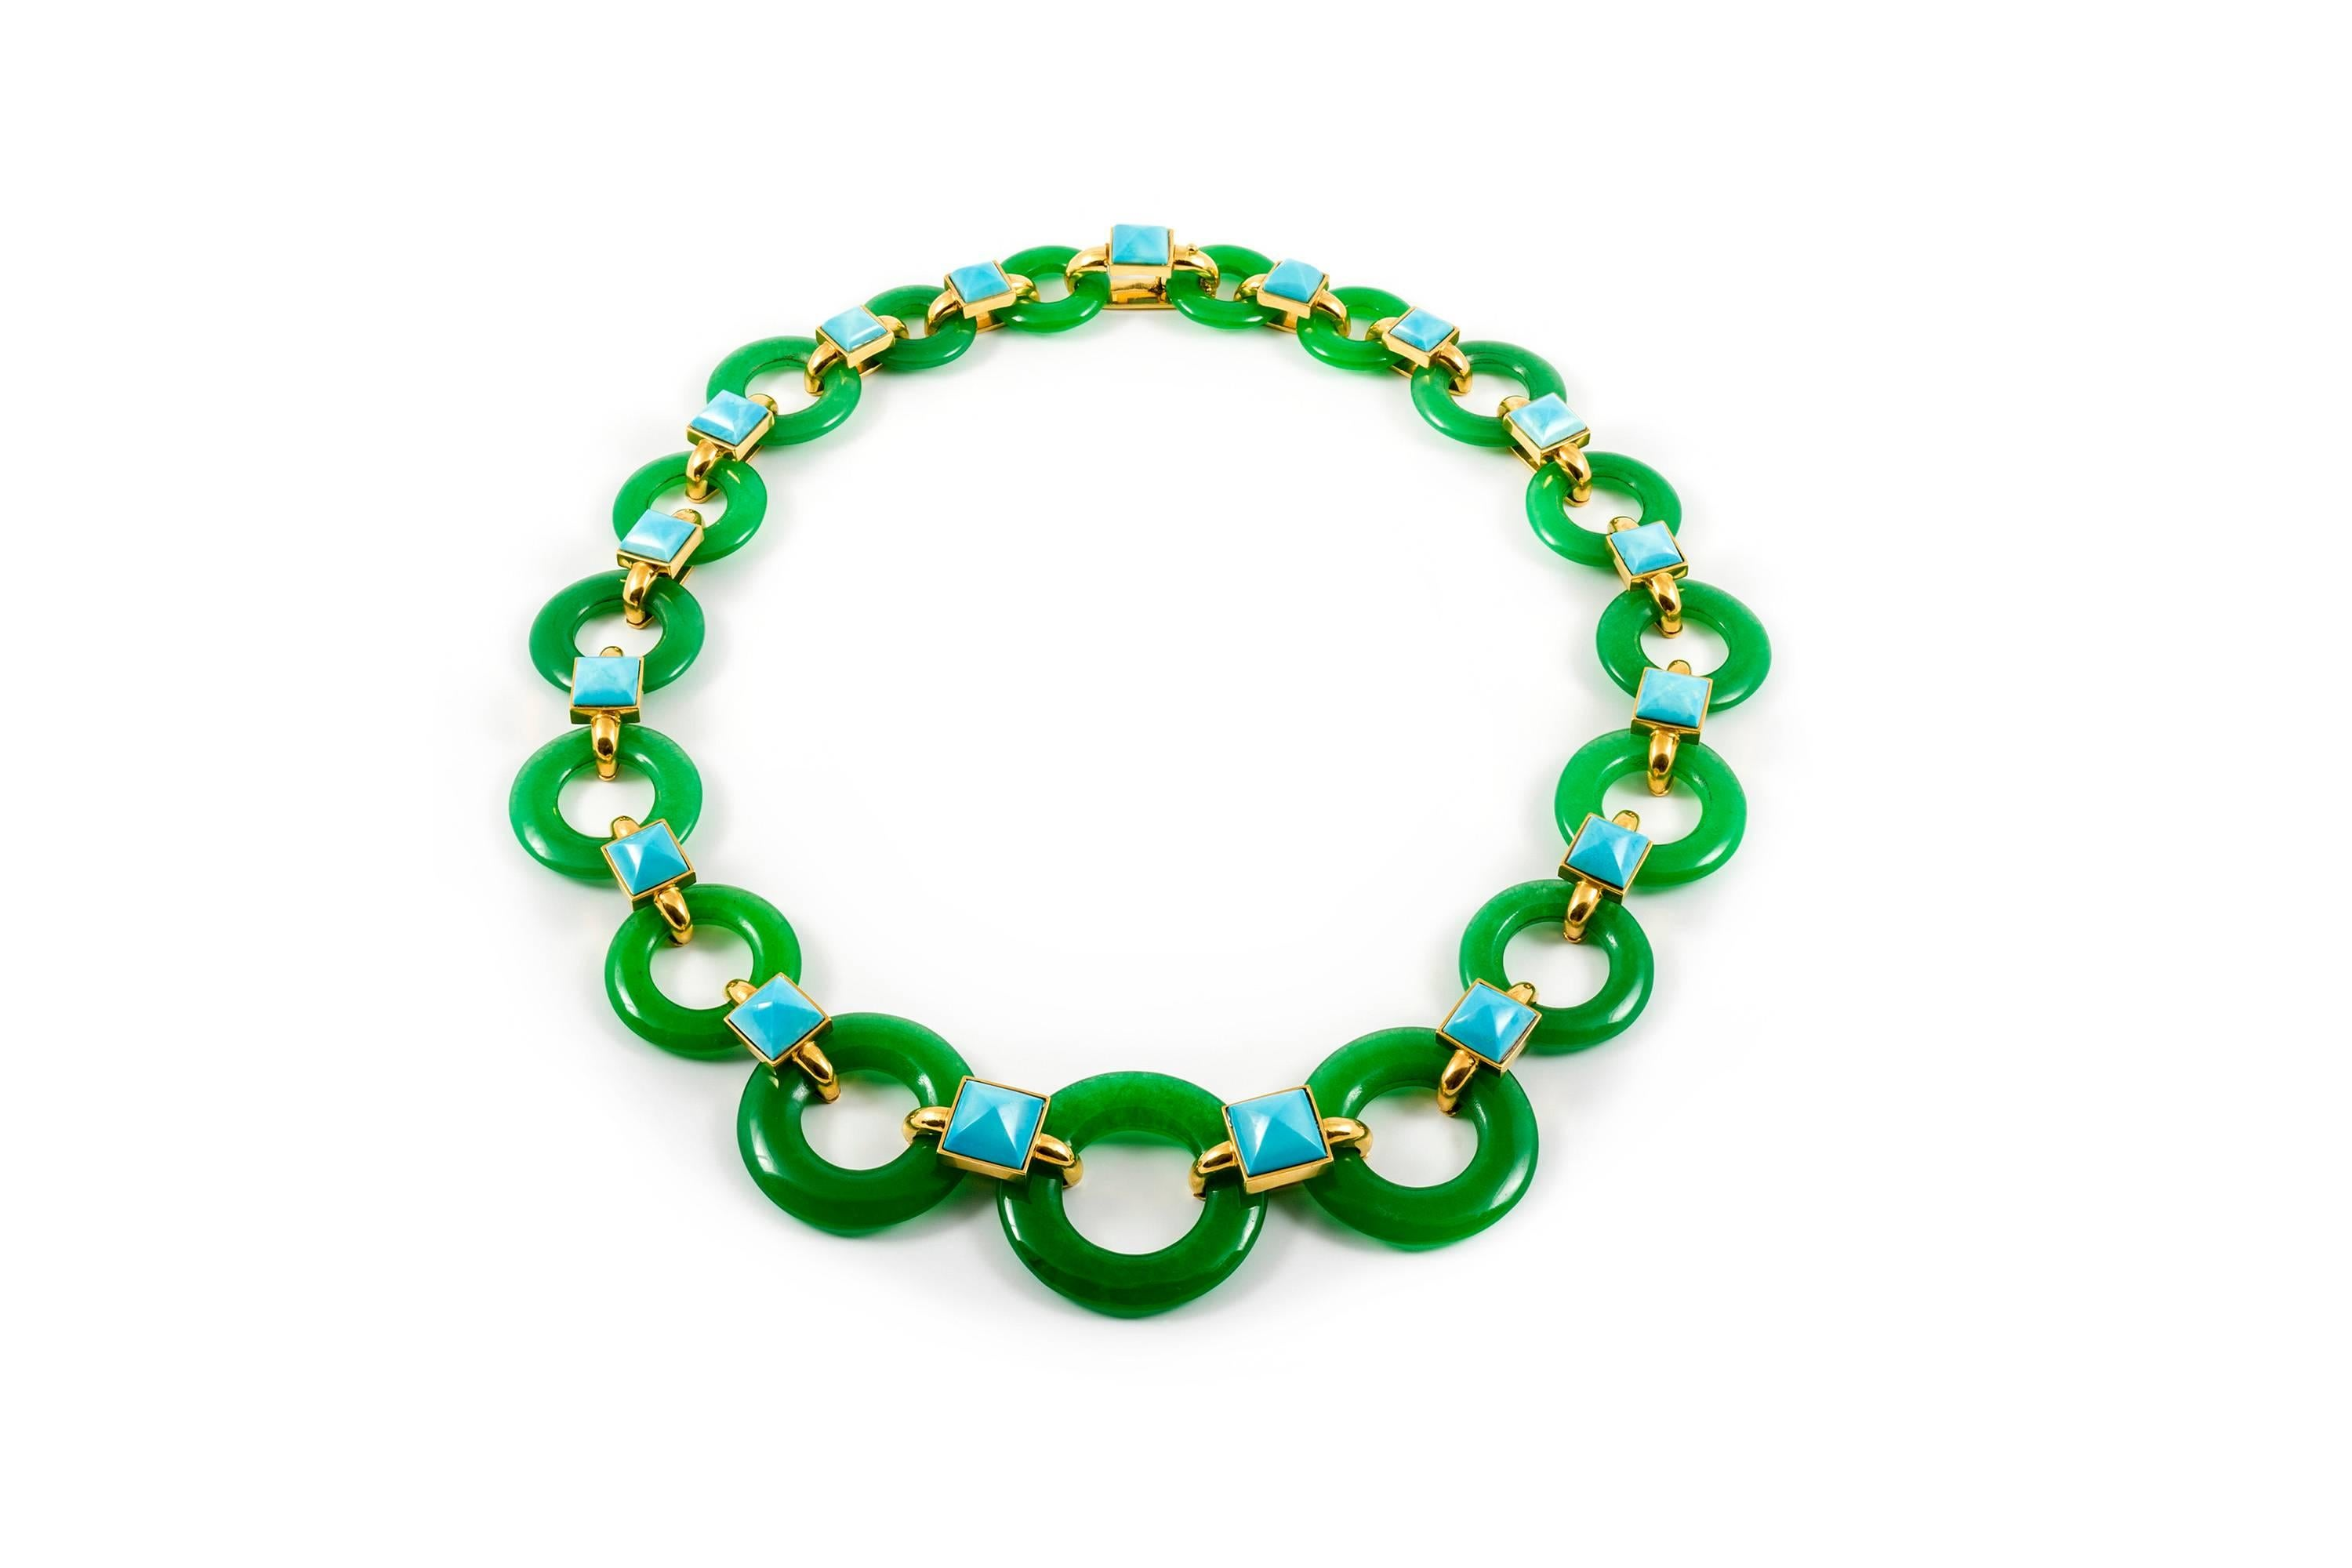 A green chalcedony and turquoise necklace designed by Aldo Cipullo in 1970 and offered by Eric Originals and Antiques Ltd.